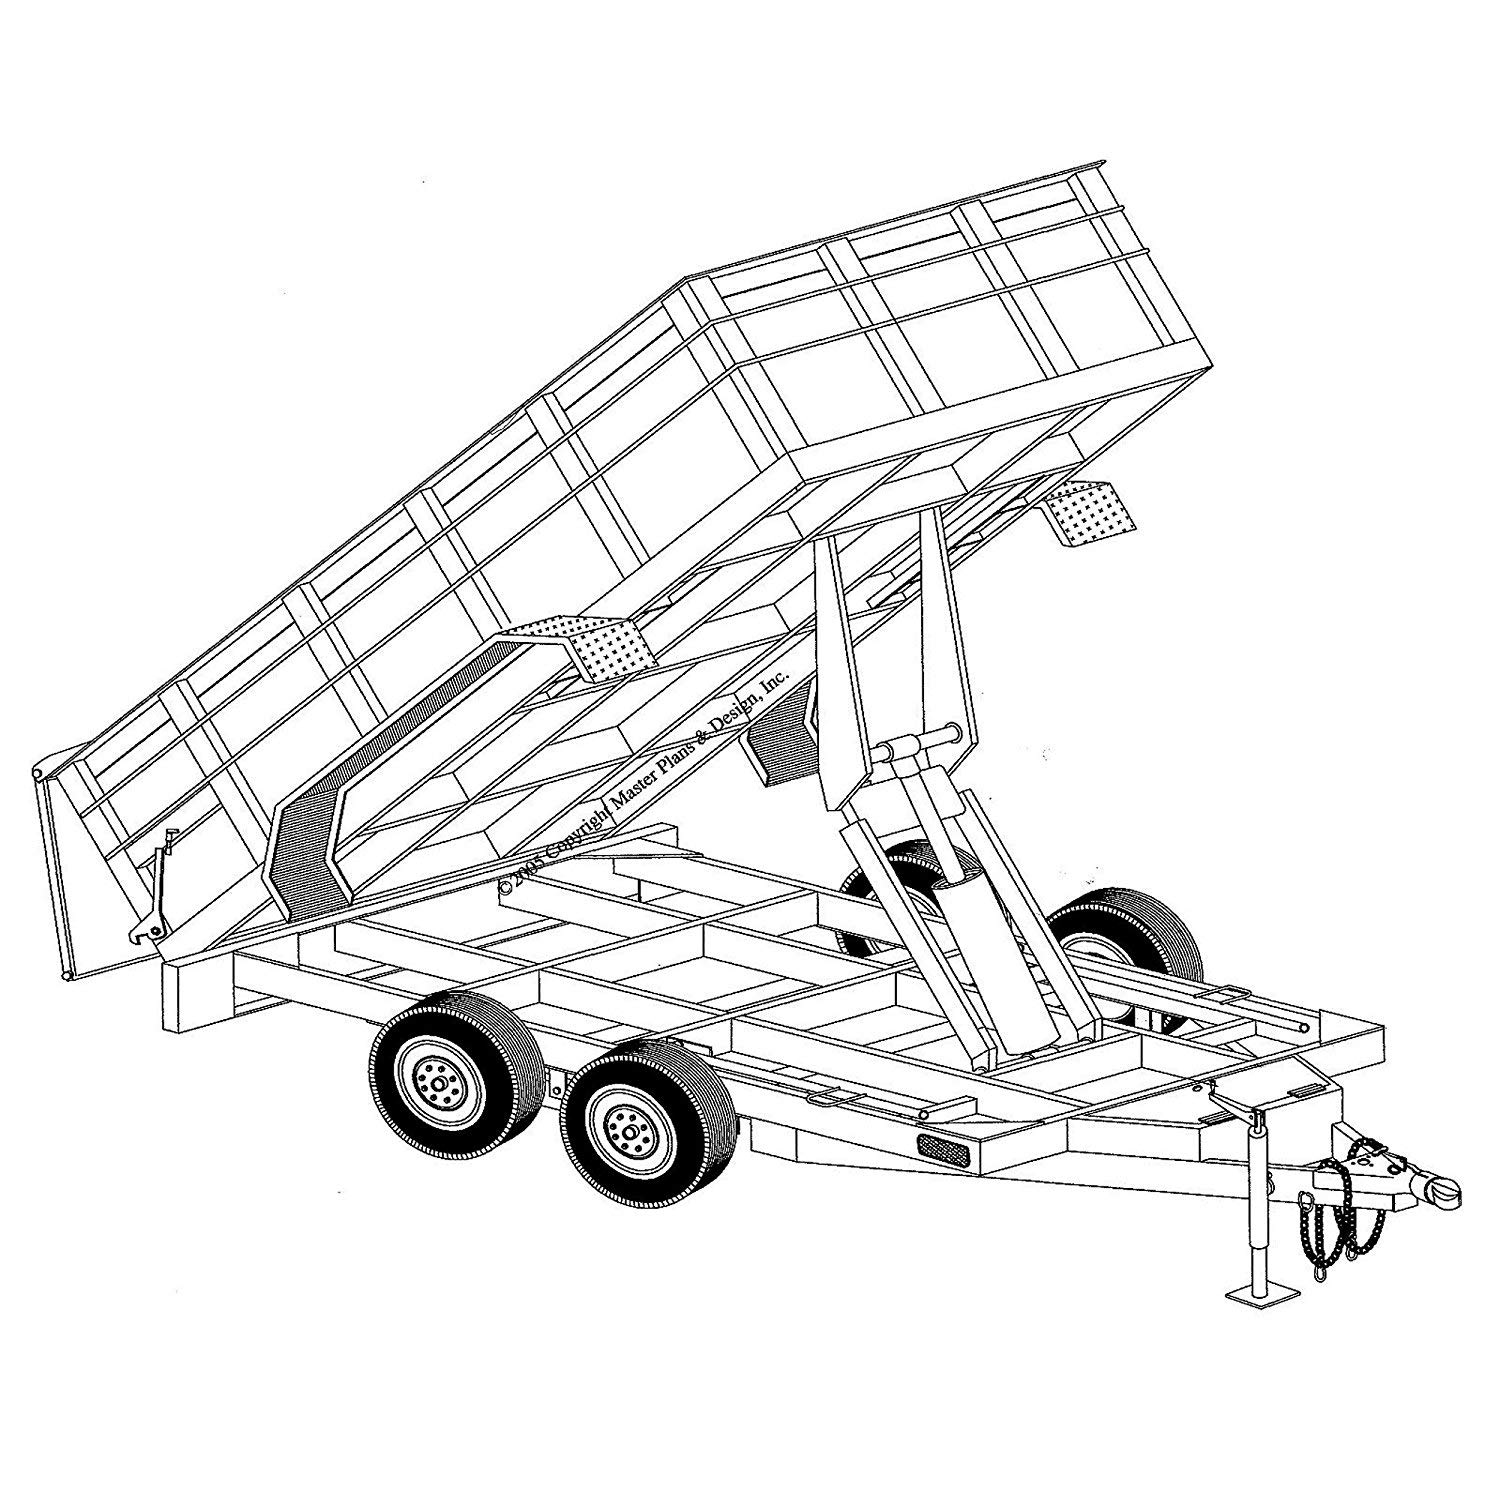 Hydraulic Dump Trailer Blueprints (12' x 6'4'' - Model 12HD) by Master Plans and Design